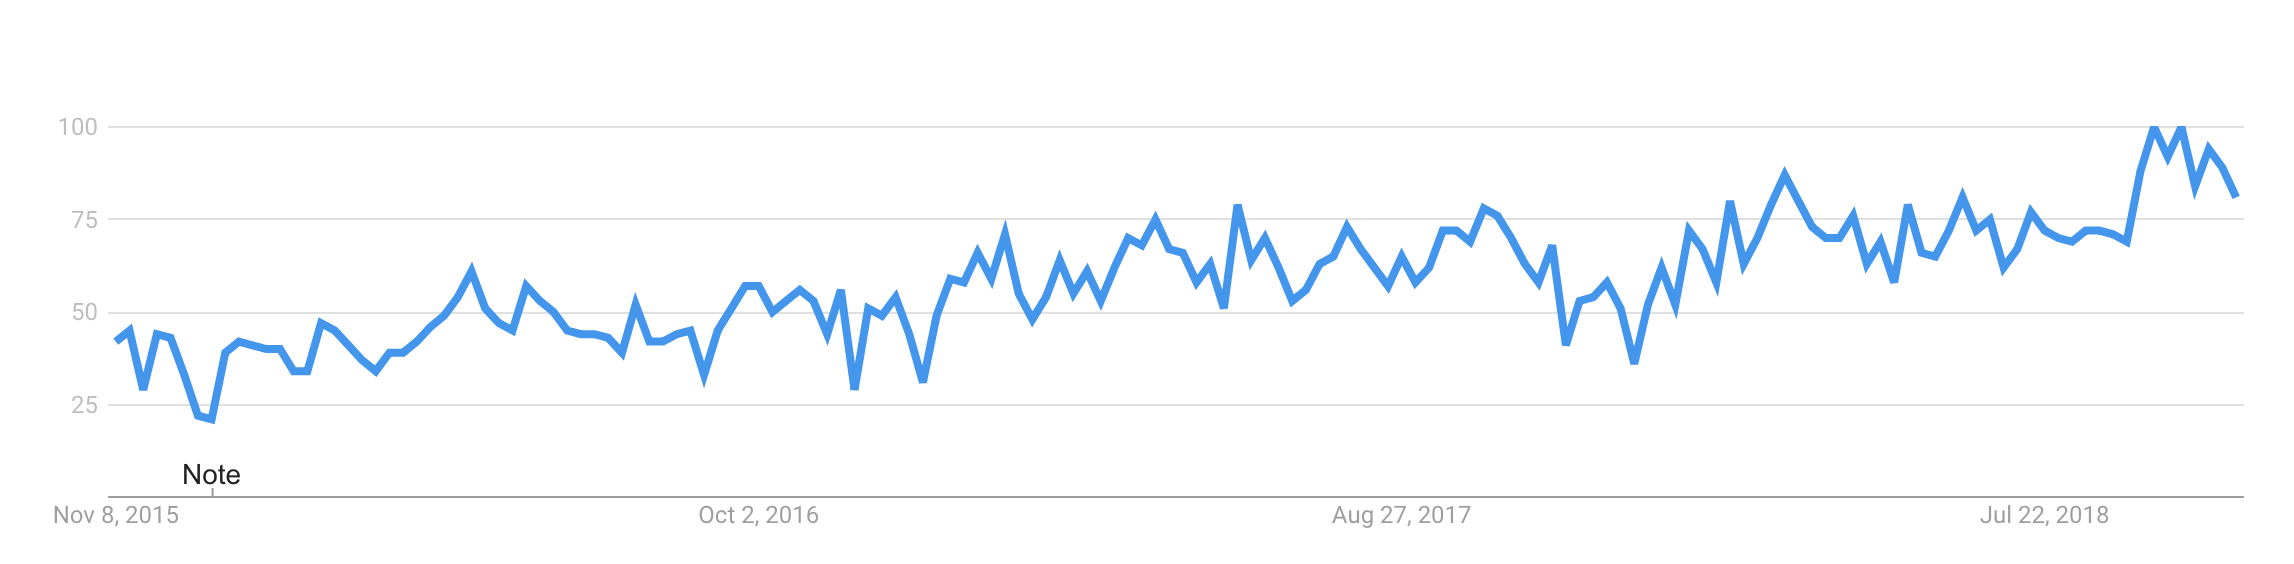 devops keyword trend on Google